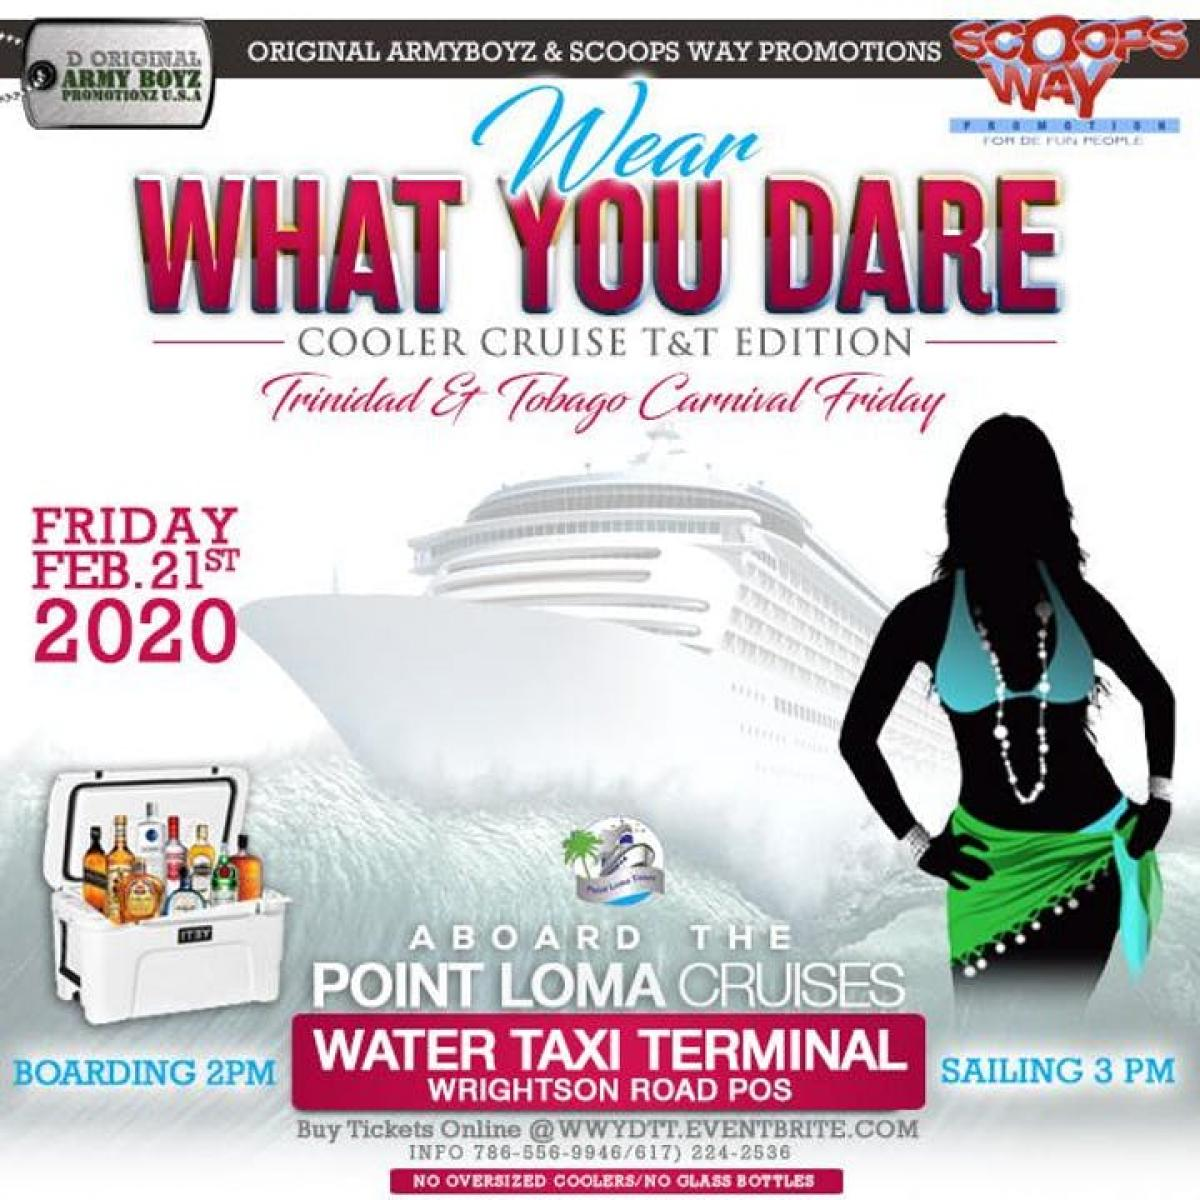 Wear What You Dare Cooler Cruise flyer or graphic.